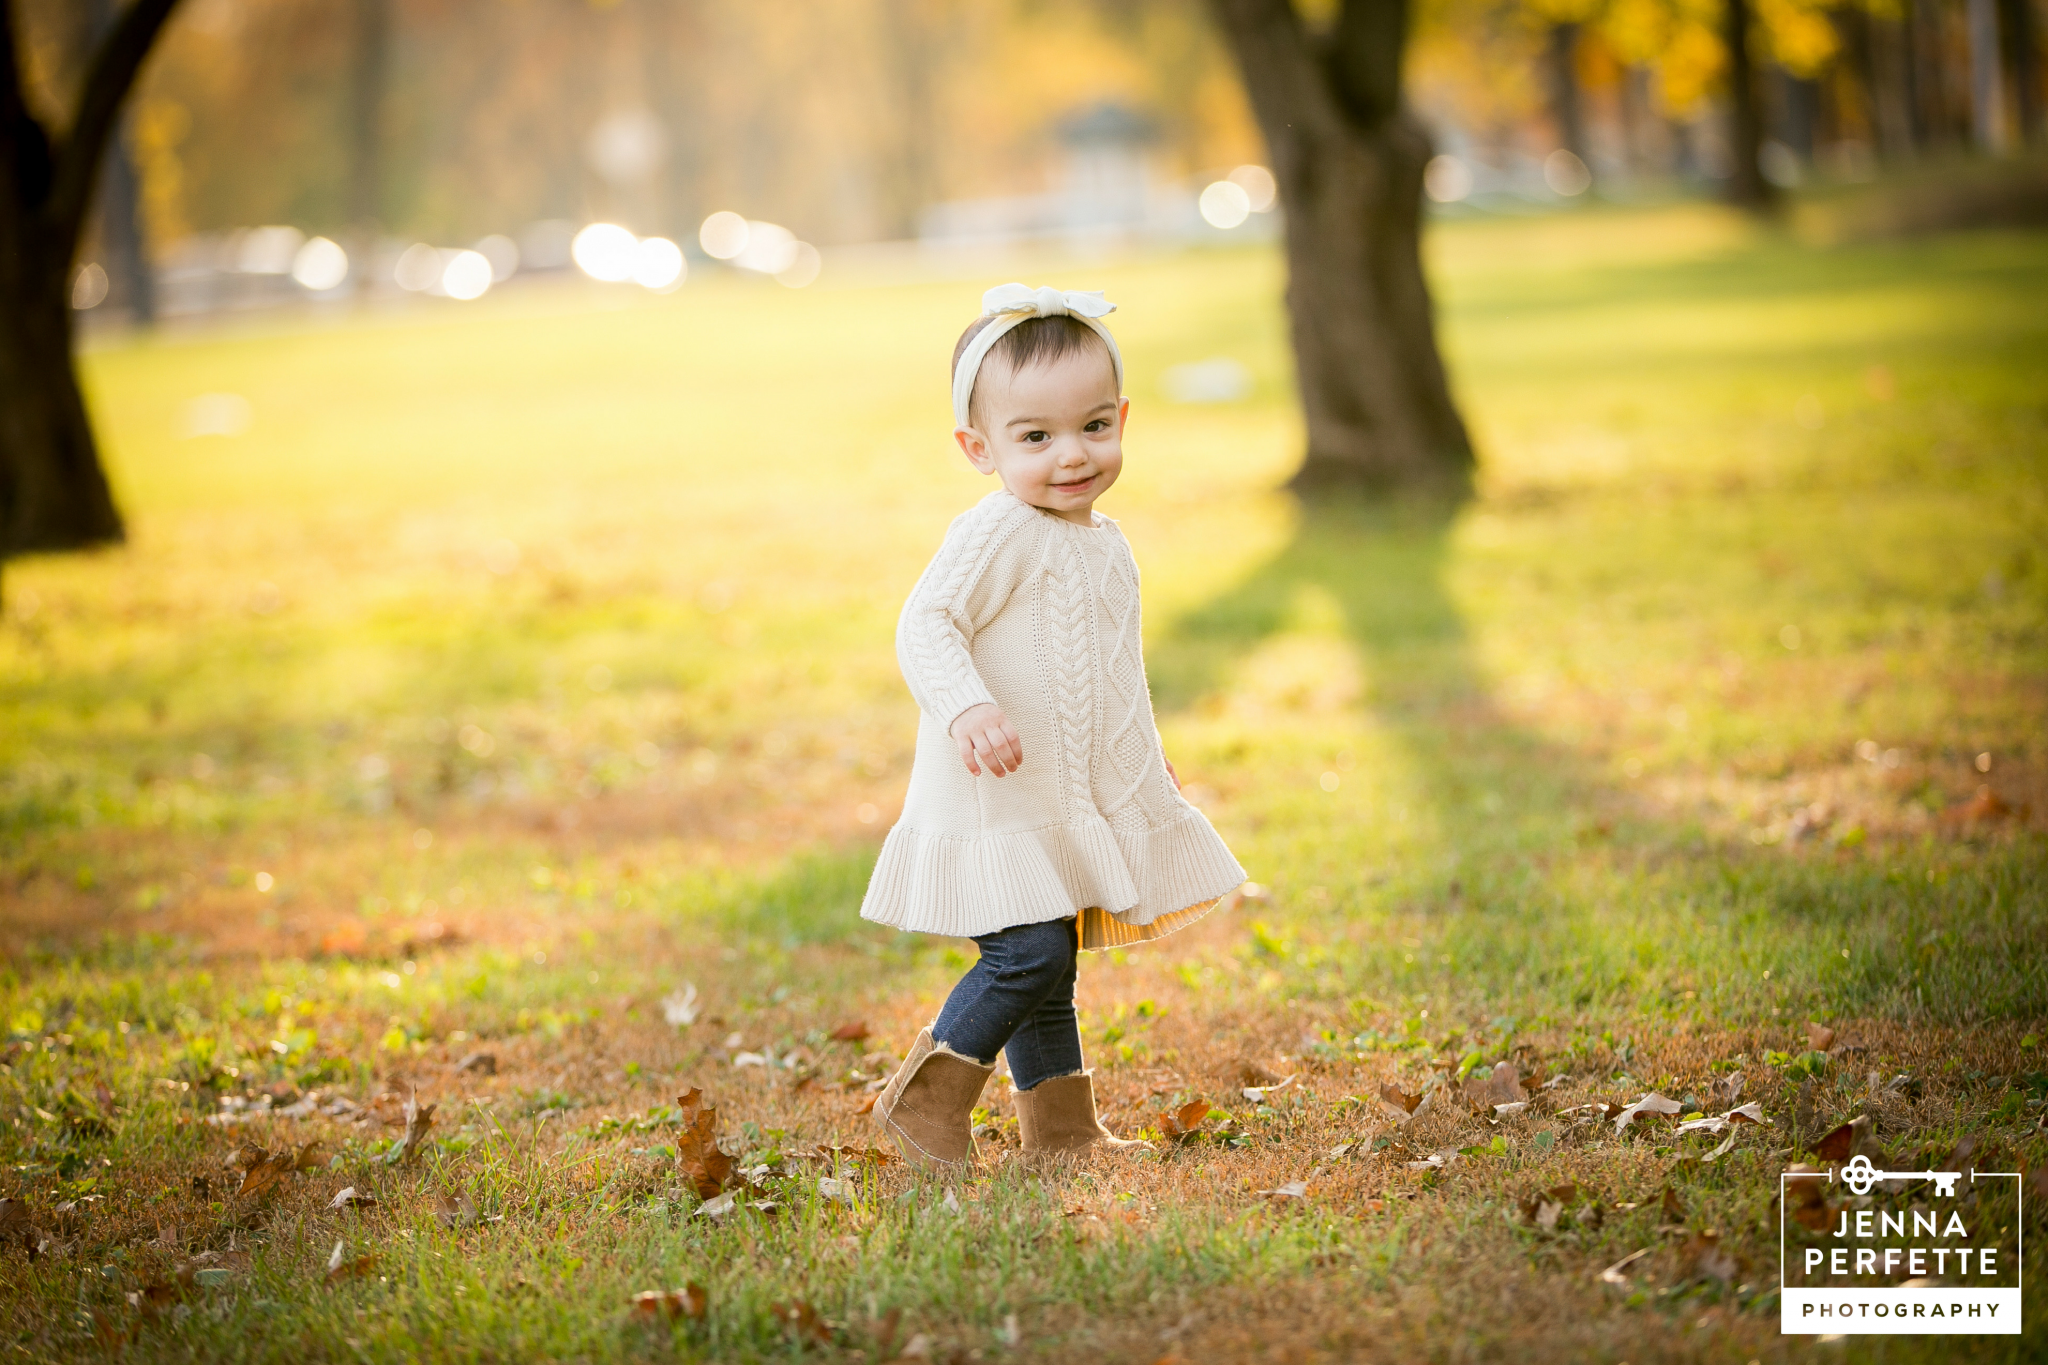 Choosing a Location for Your Family Session near Somerville New Jersey Photography Shoot